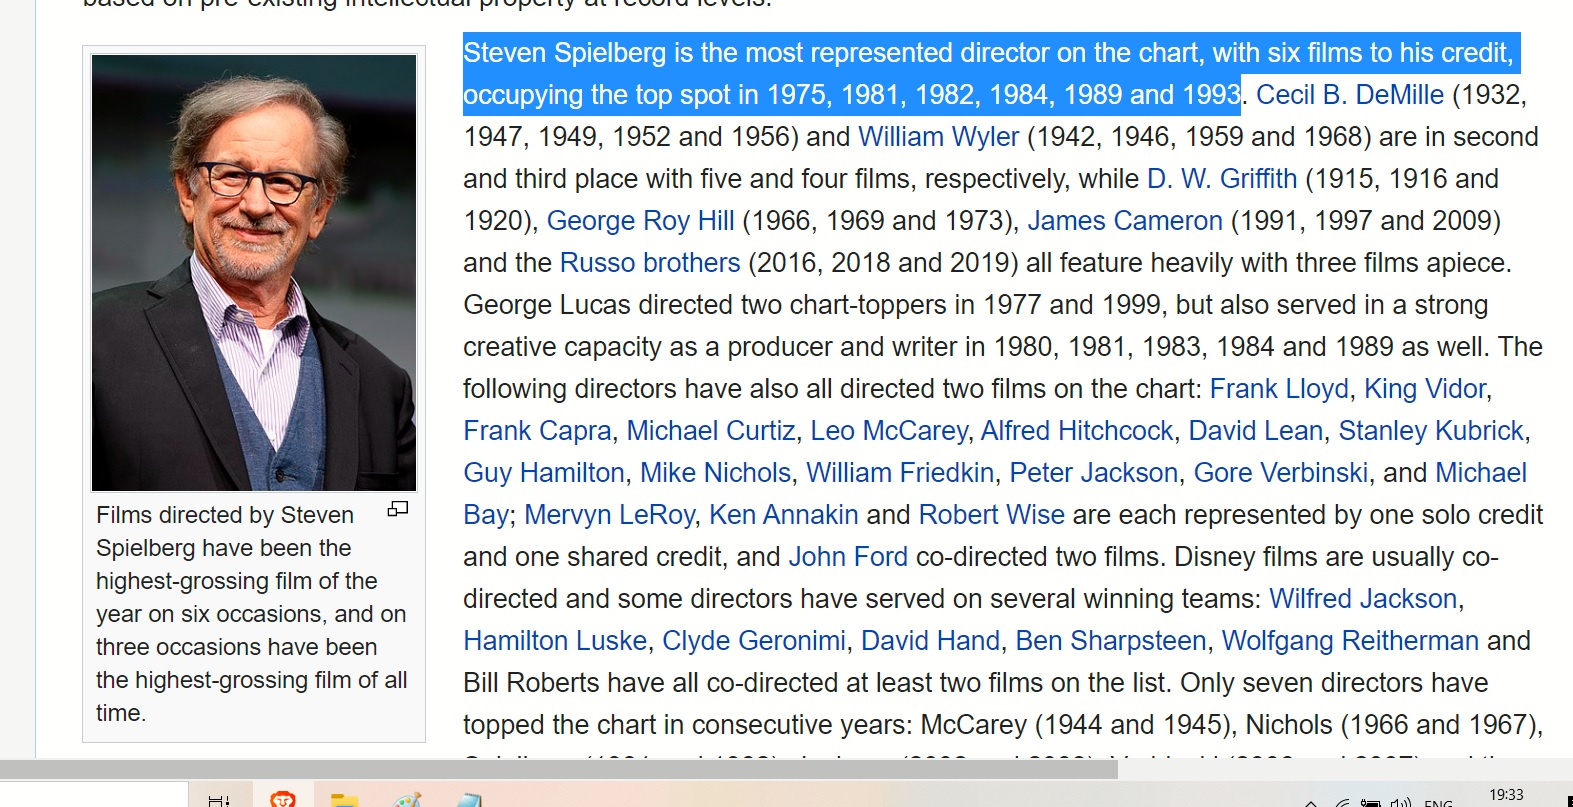 SPIELBERG 6 FILMS 6 TIMES HIHETS GORISSING IN 6 YEARS